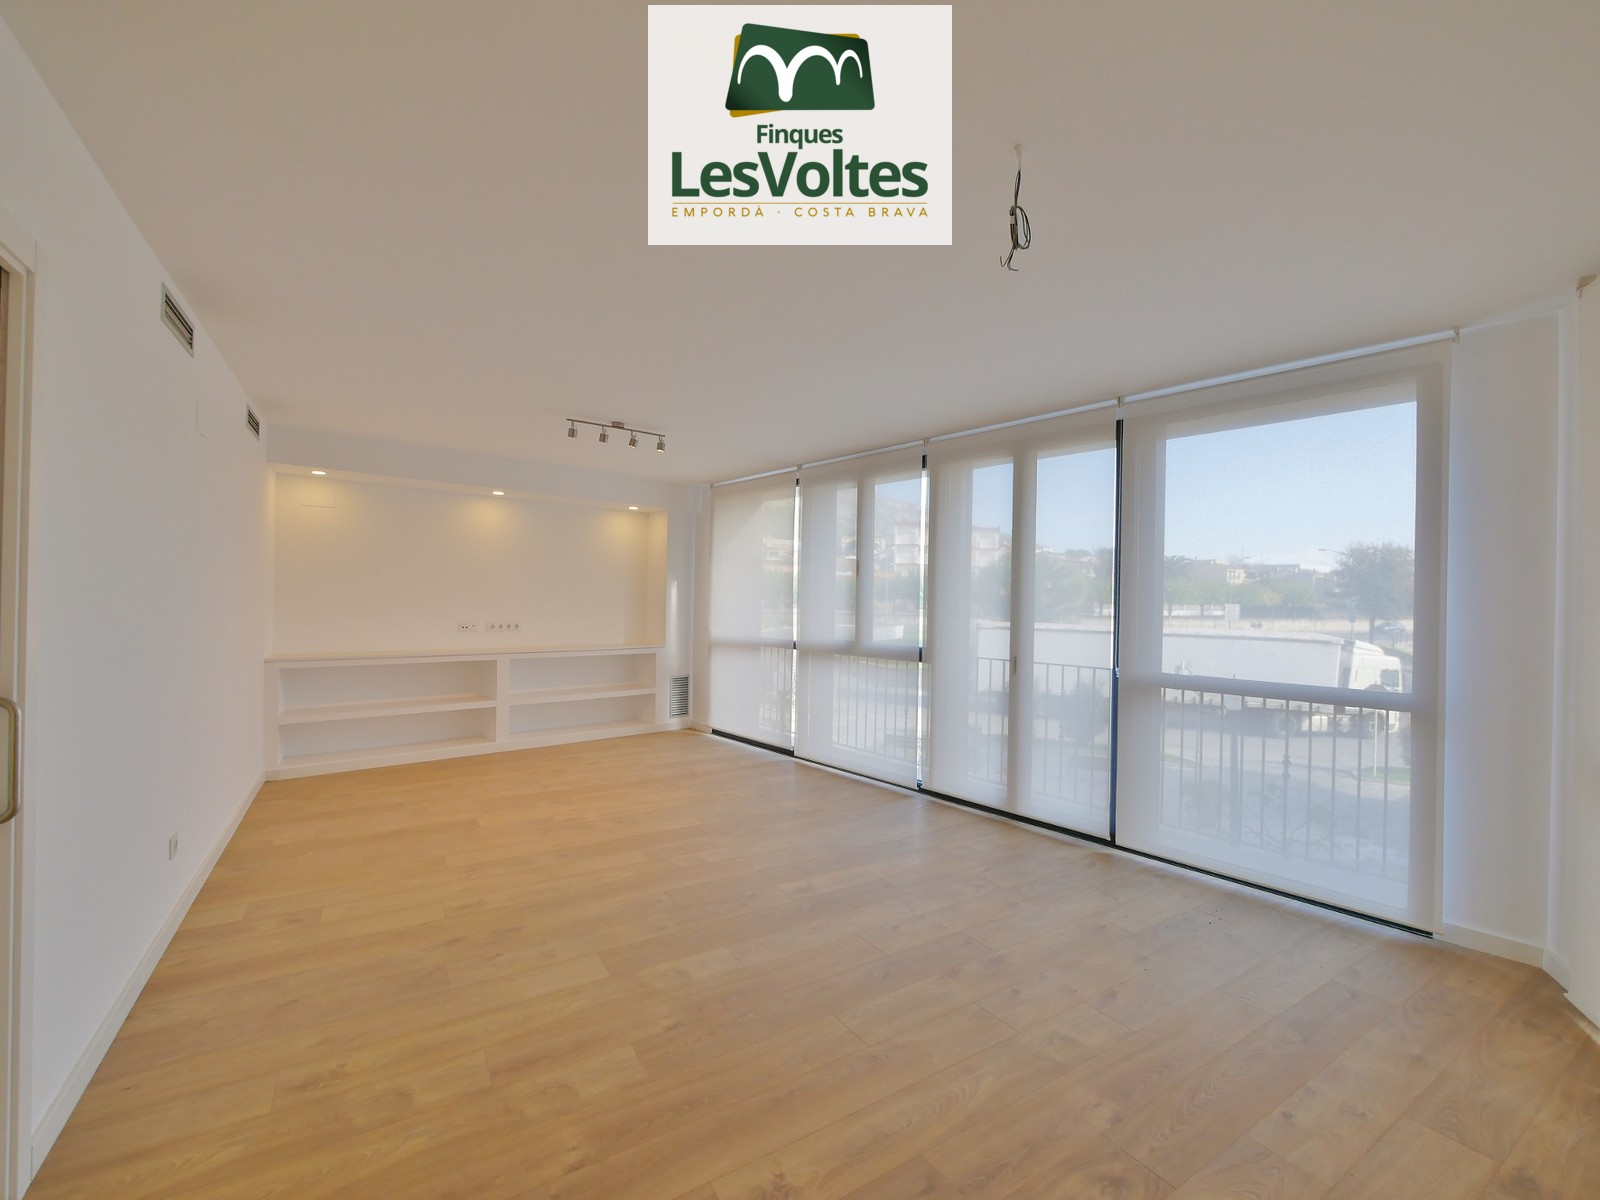 IMPECCABLE BRAND NEW CENTRAL FLAT OF 120 M2 ON THE FIRST FLOOR WITH ELEVATOR FOR RENT IN TORROELLA DE MONTGRÍ.